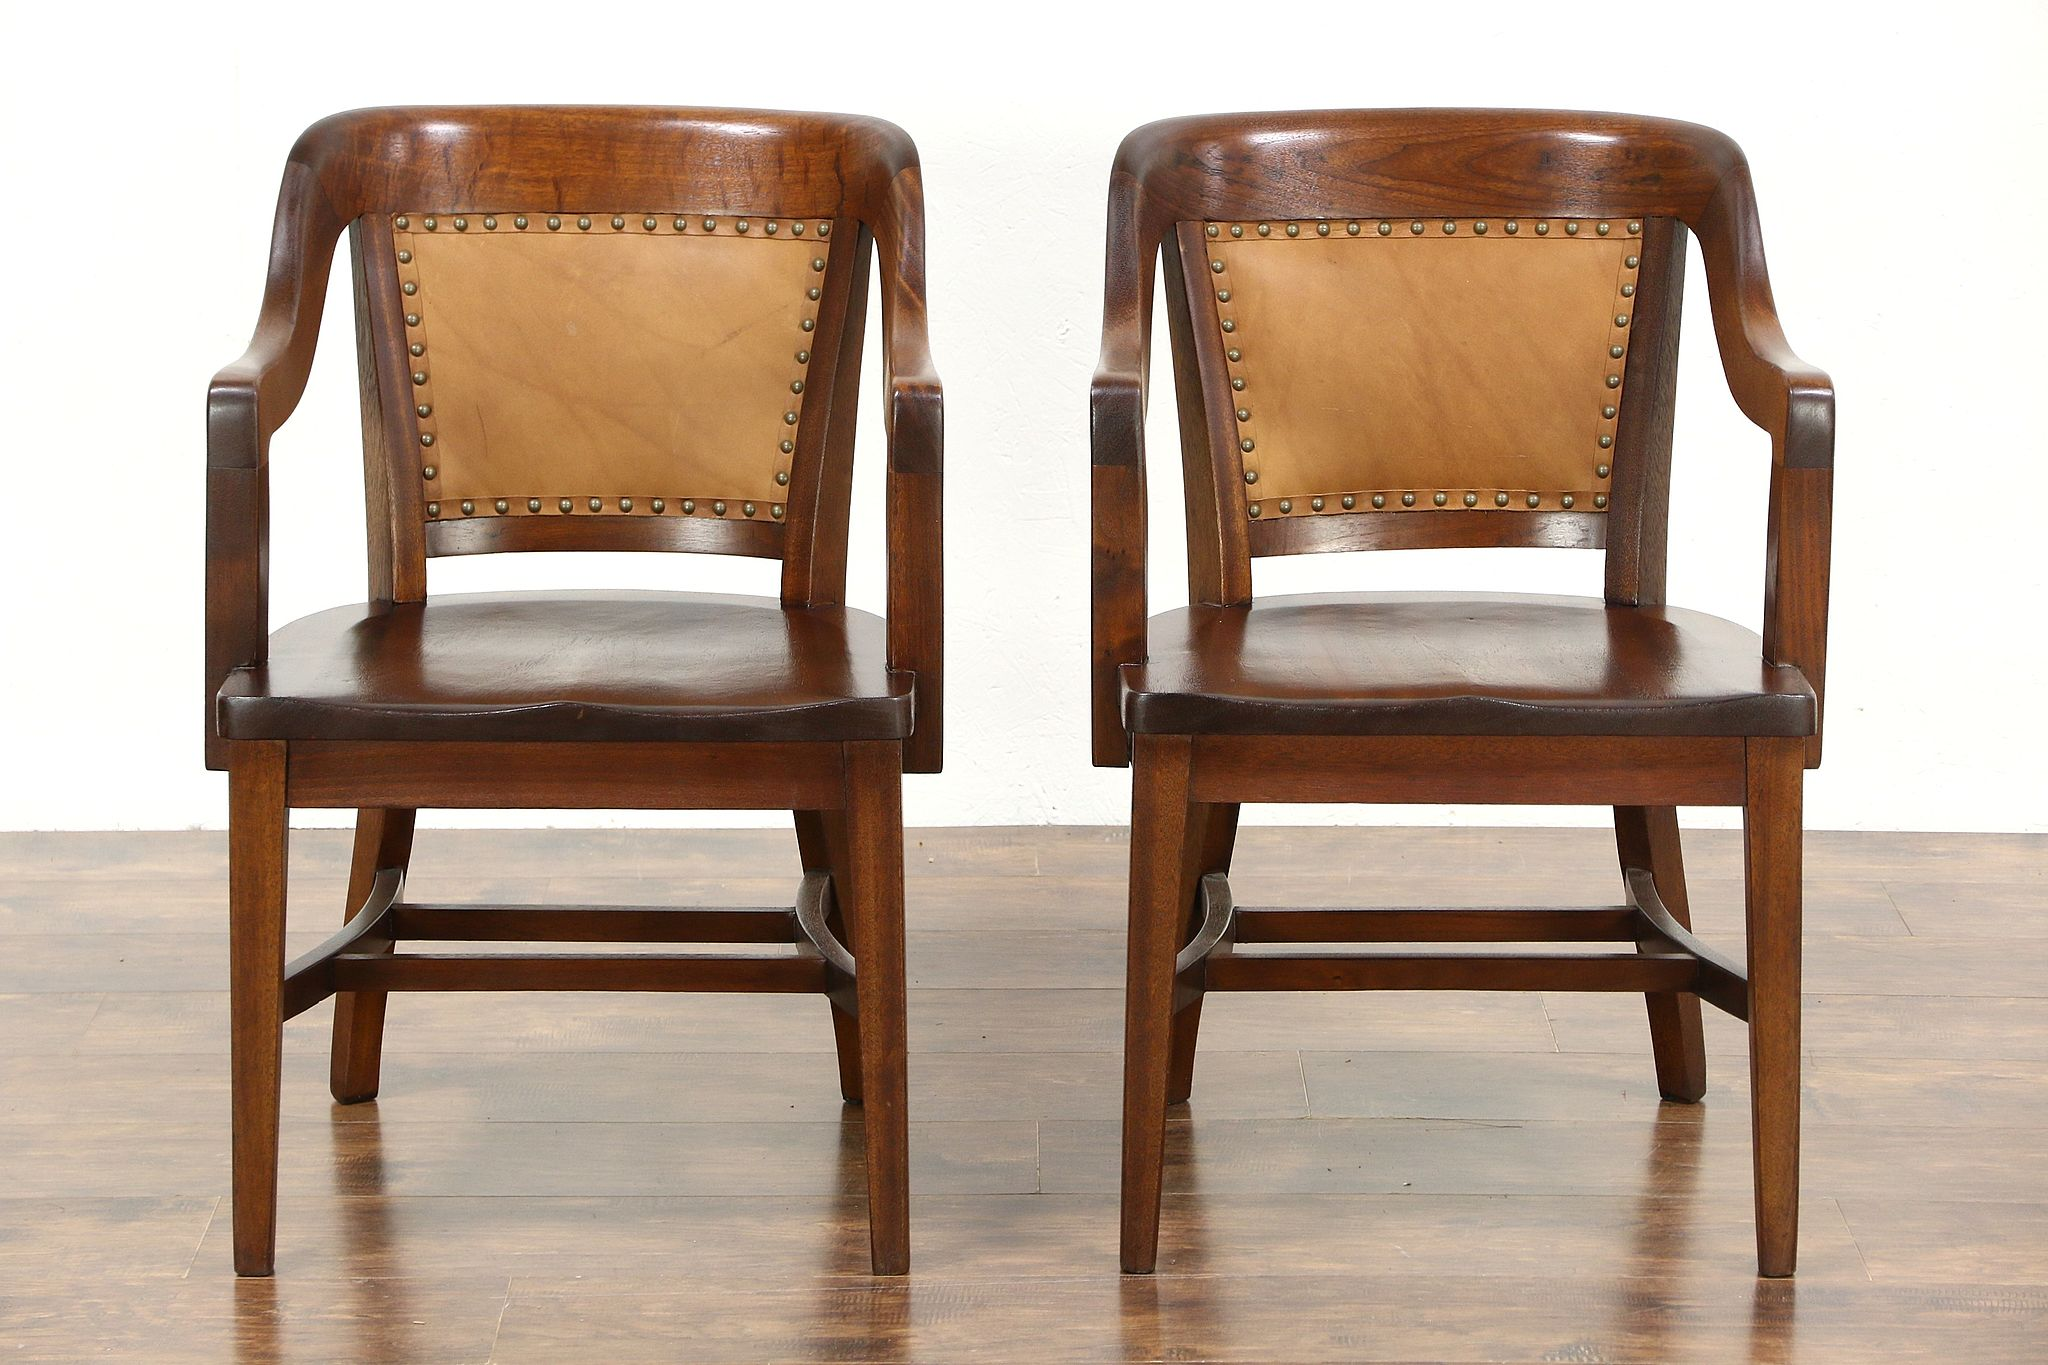 Charmant Pair Of Antique Mahogany U0026 Leather Banker Chairs, Signed Lome, Chicago